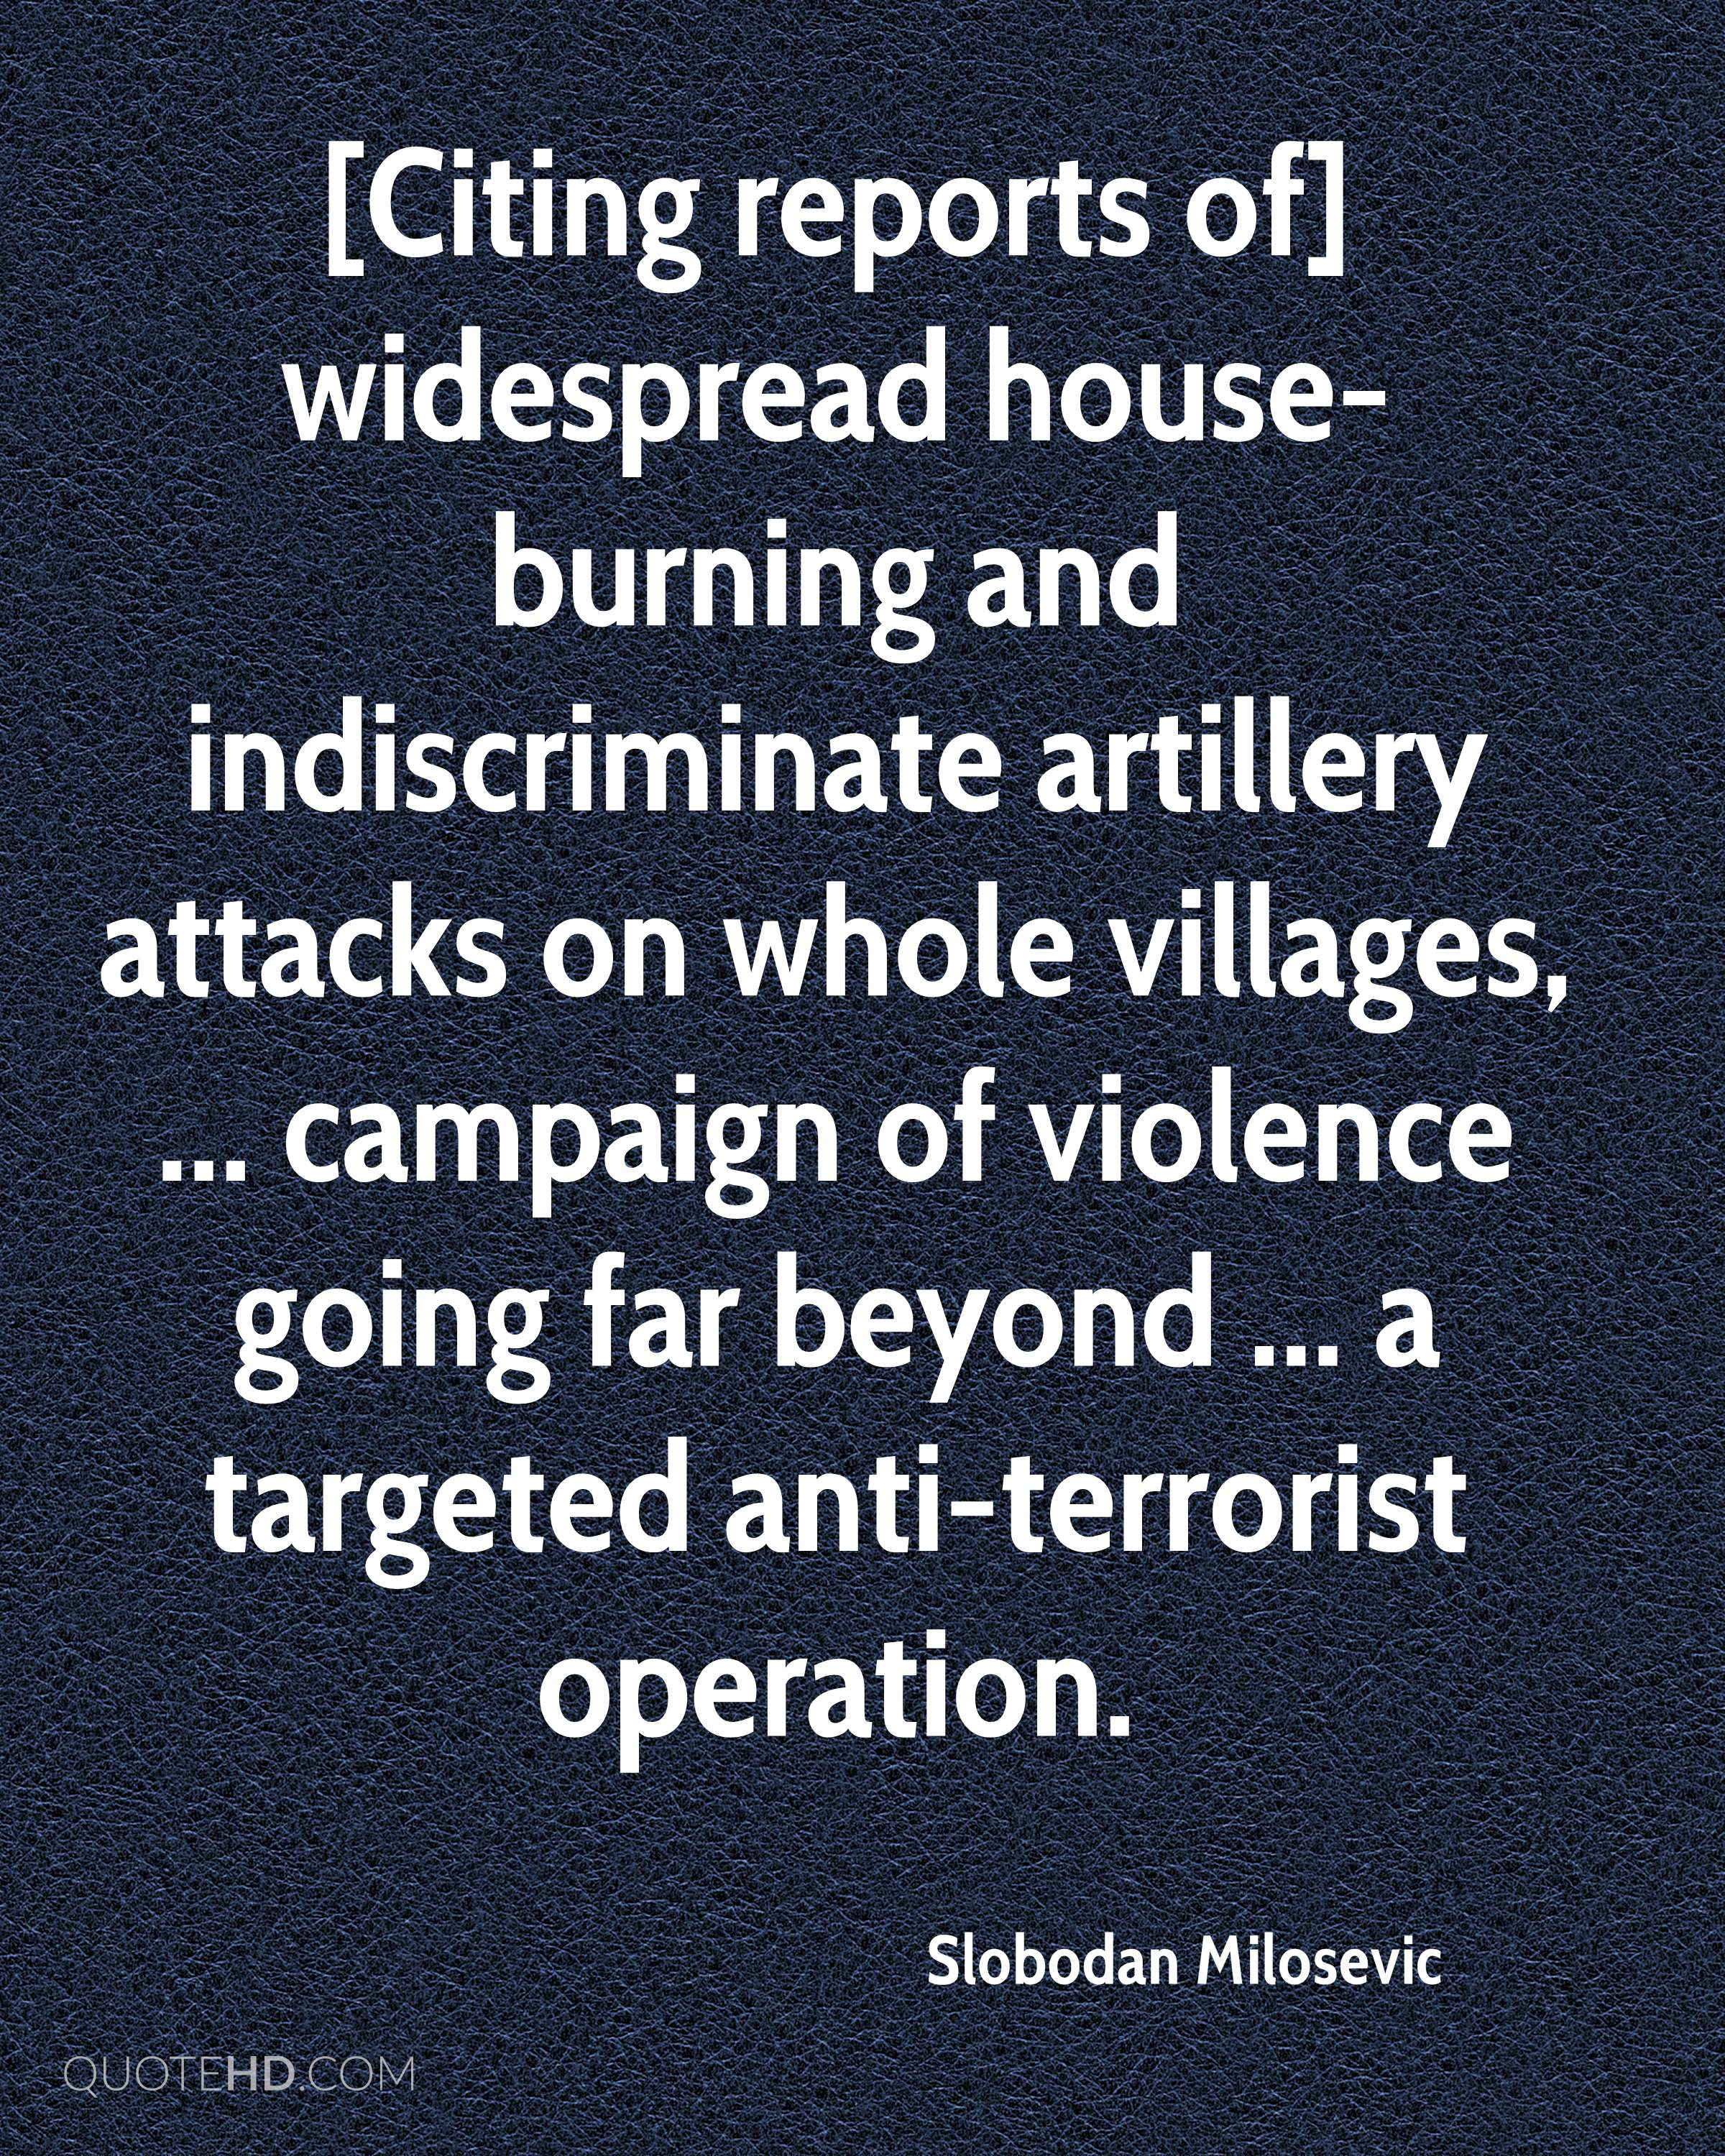 [Citing reports of] widespread house-burning and indiscriminate artillery attacks on whole villages, ... campaign of violence going far beyond ... a targeted anti-terrorist operation.